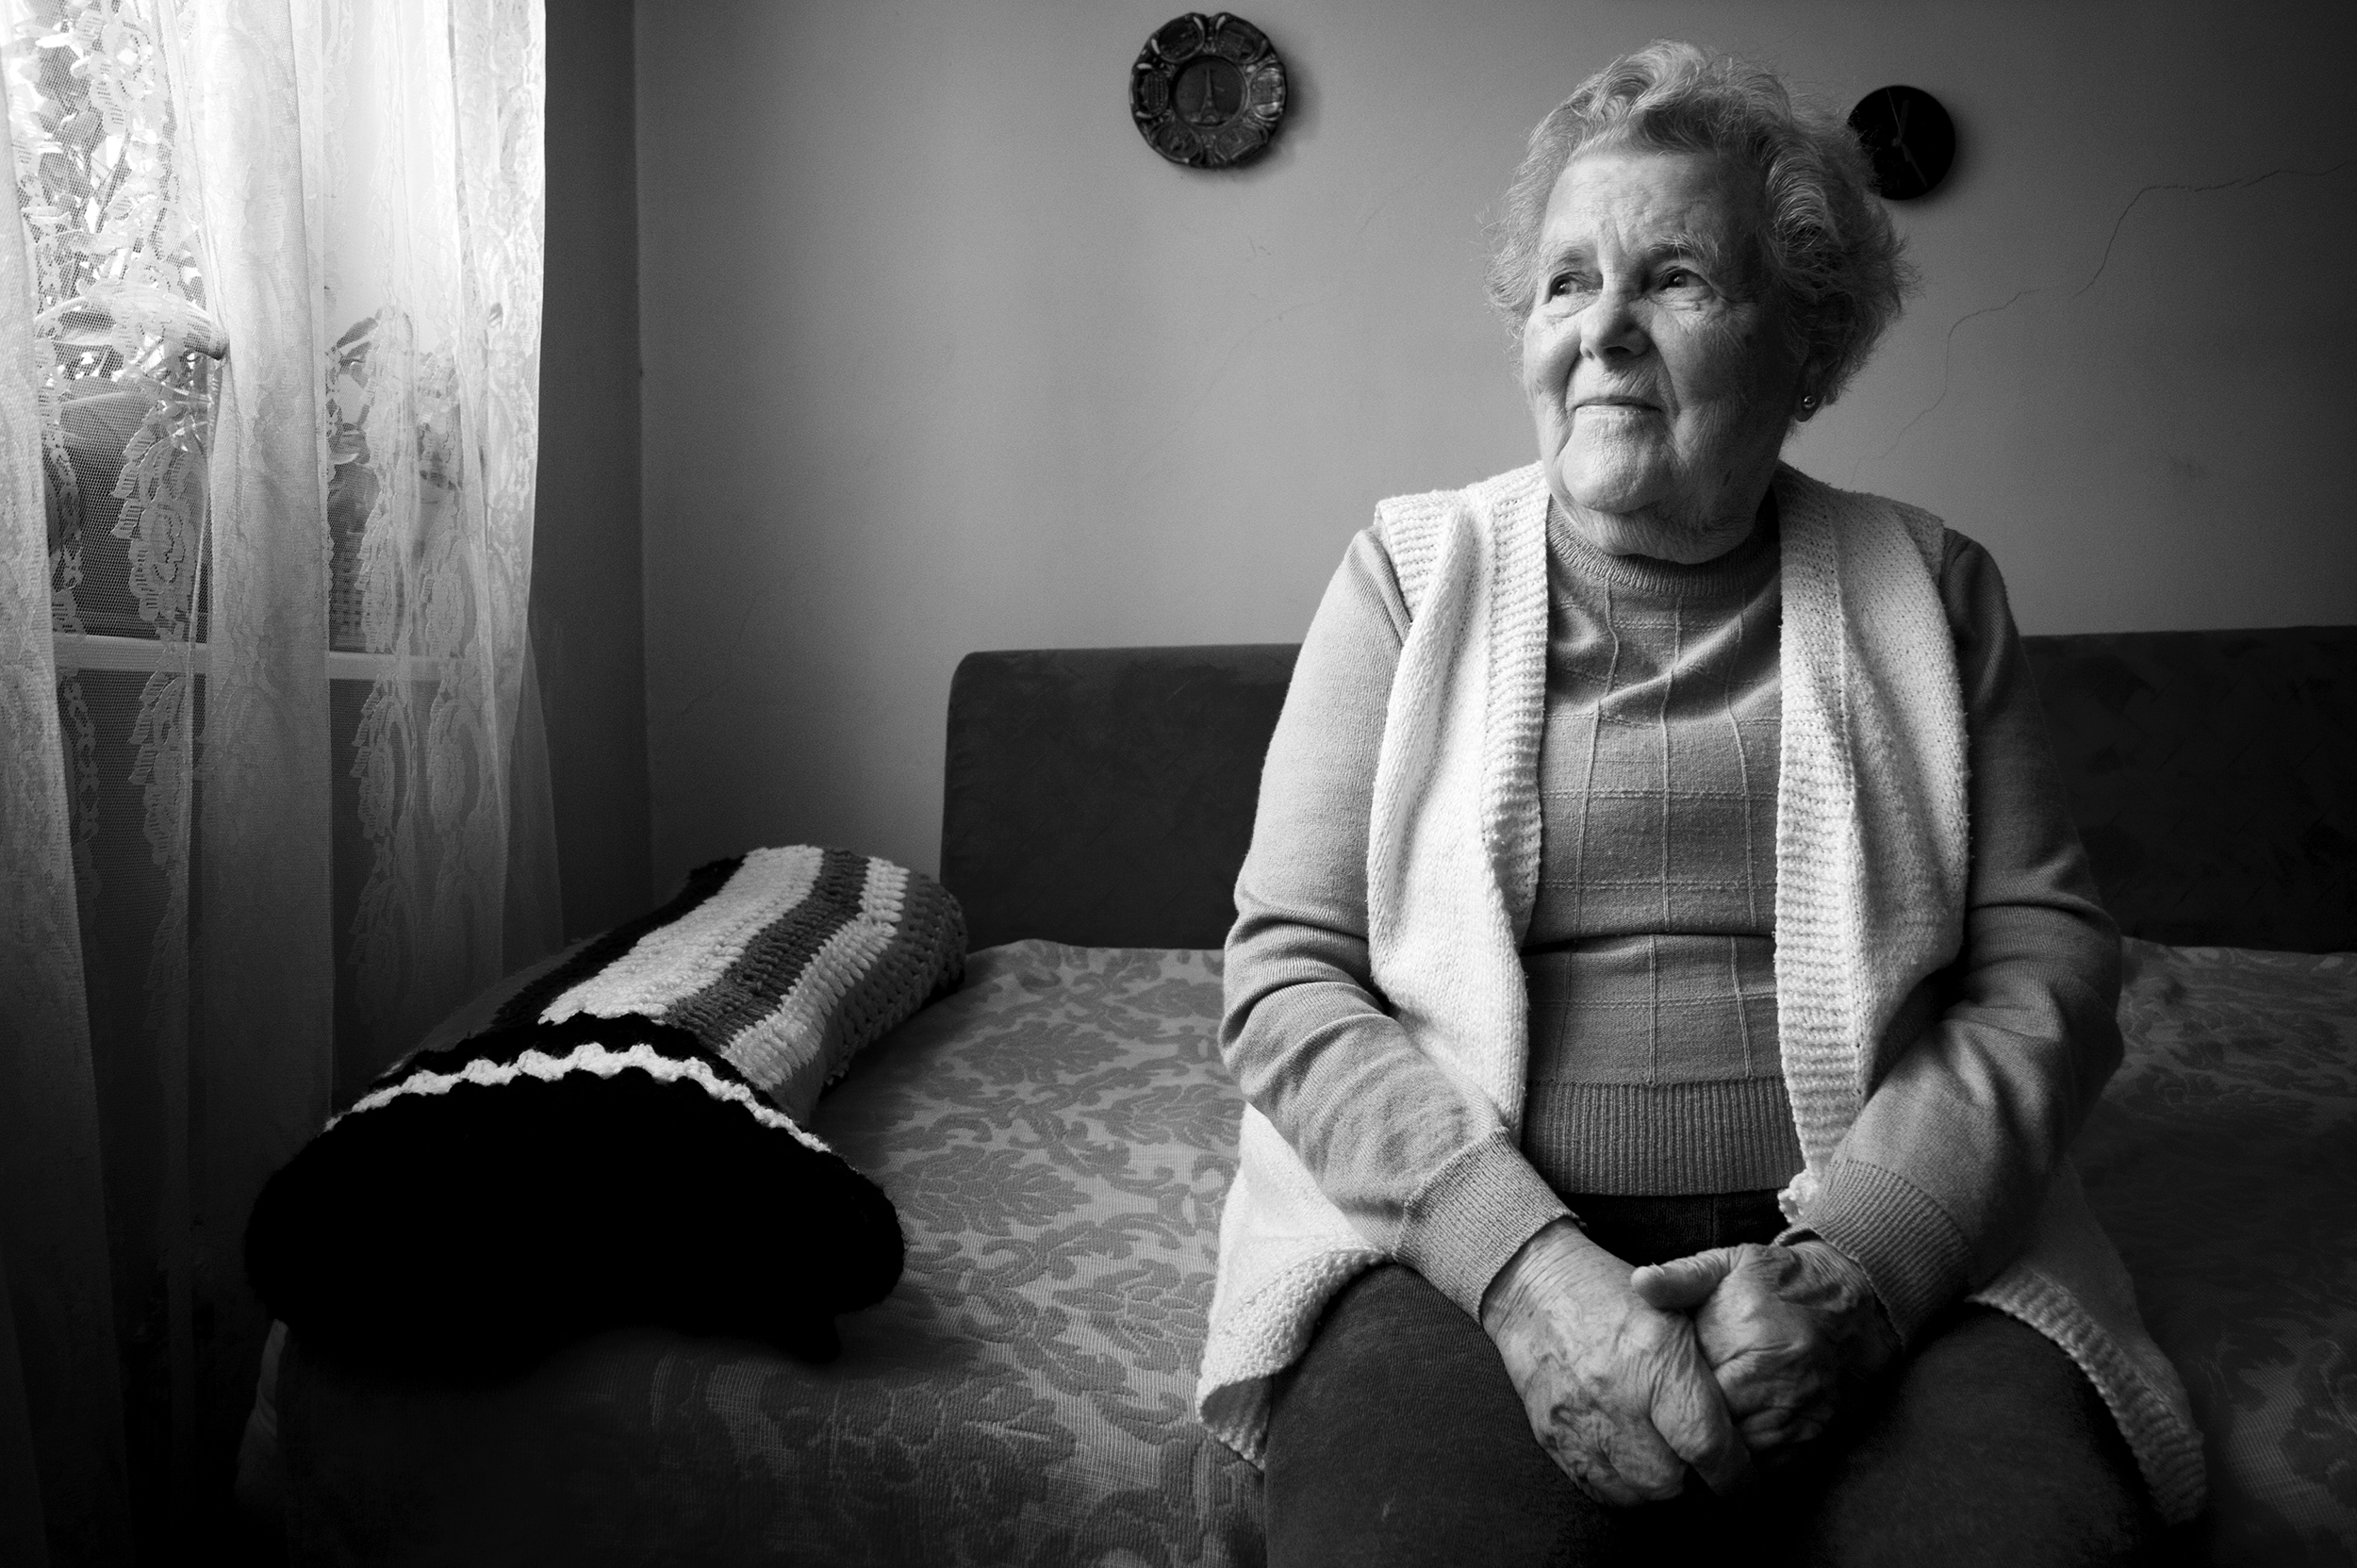 Vioara 'Ibby' Braun (Rosenzweig), 87, poses for a portrait in her home in Oradea, Romania on January 9, 2015. Born in Marghita, Romania, a town under Hungarian control during the war, Braun was deported at the age of seventeen to the Bergen Belsen concentration camp. She survived to be married her late husband, Tiberiu, an Auschwitz survivor. After the war, Braun would spend five years working for the Women's Anti-Fascist Union in Romania, and later as a secretary for the Women's Democratic Union